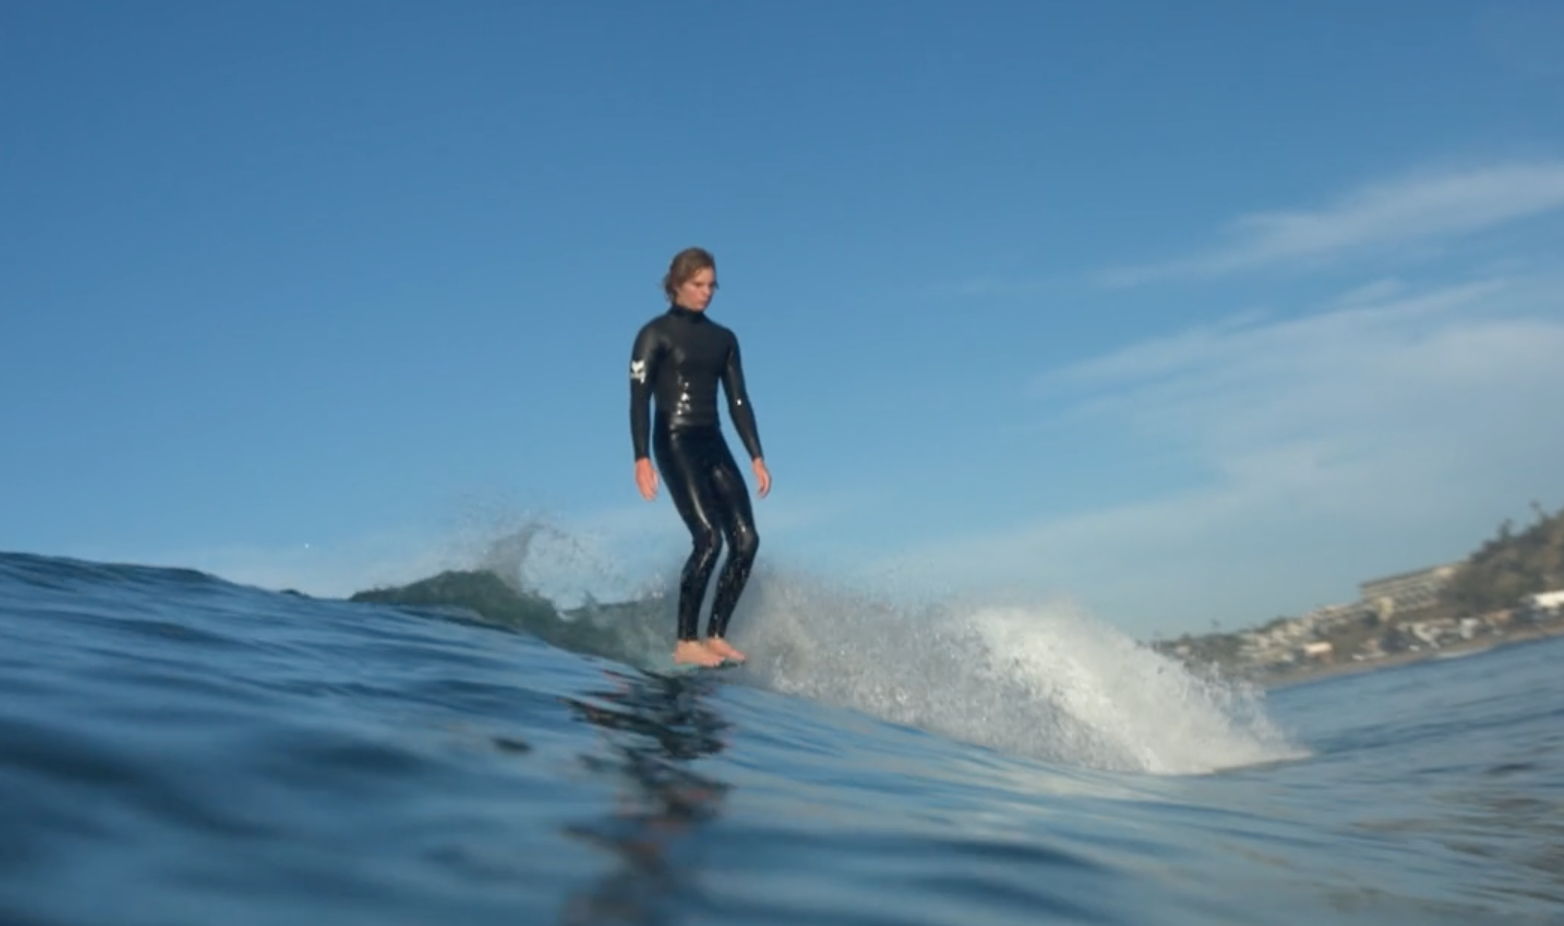 ADDICTED TO THE GLIDE   Director: Ryan Struck    Running time: 3 mins    Reilly Stone is a longboarder from Pleasure Point, California. We explore Reilly's love of the   glide  as he guides us through a tour of Santa Cruz as we've never seen it before.